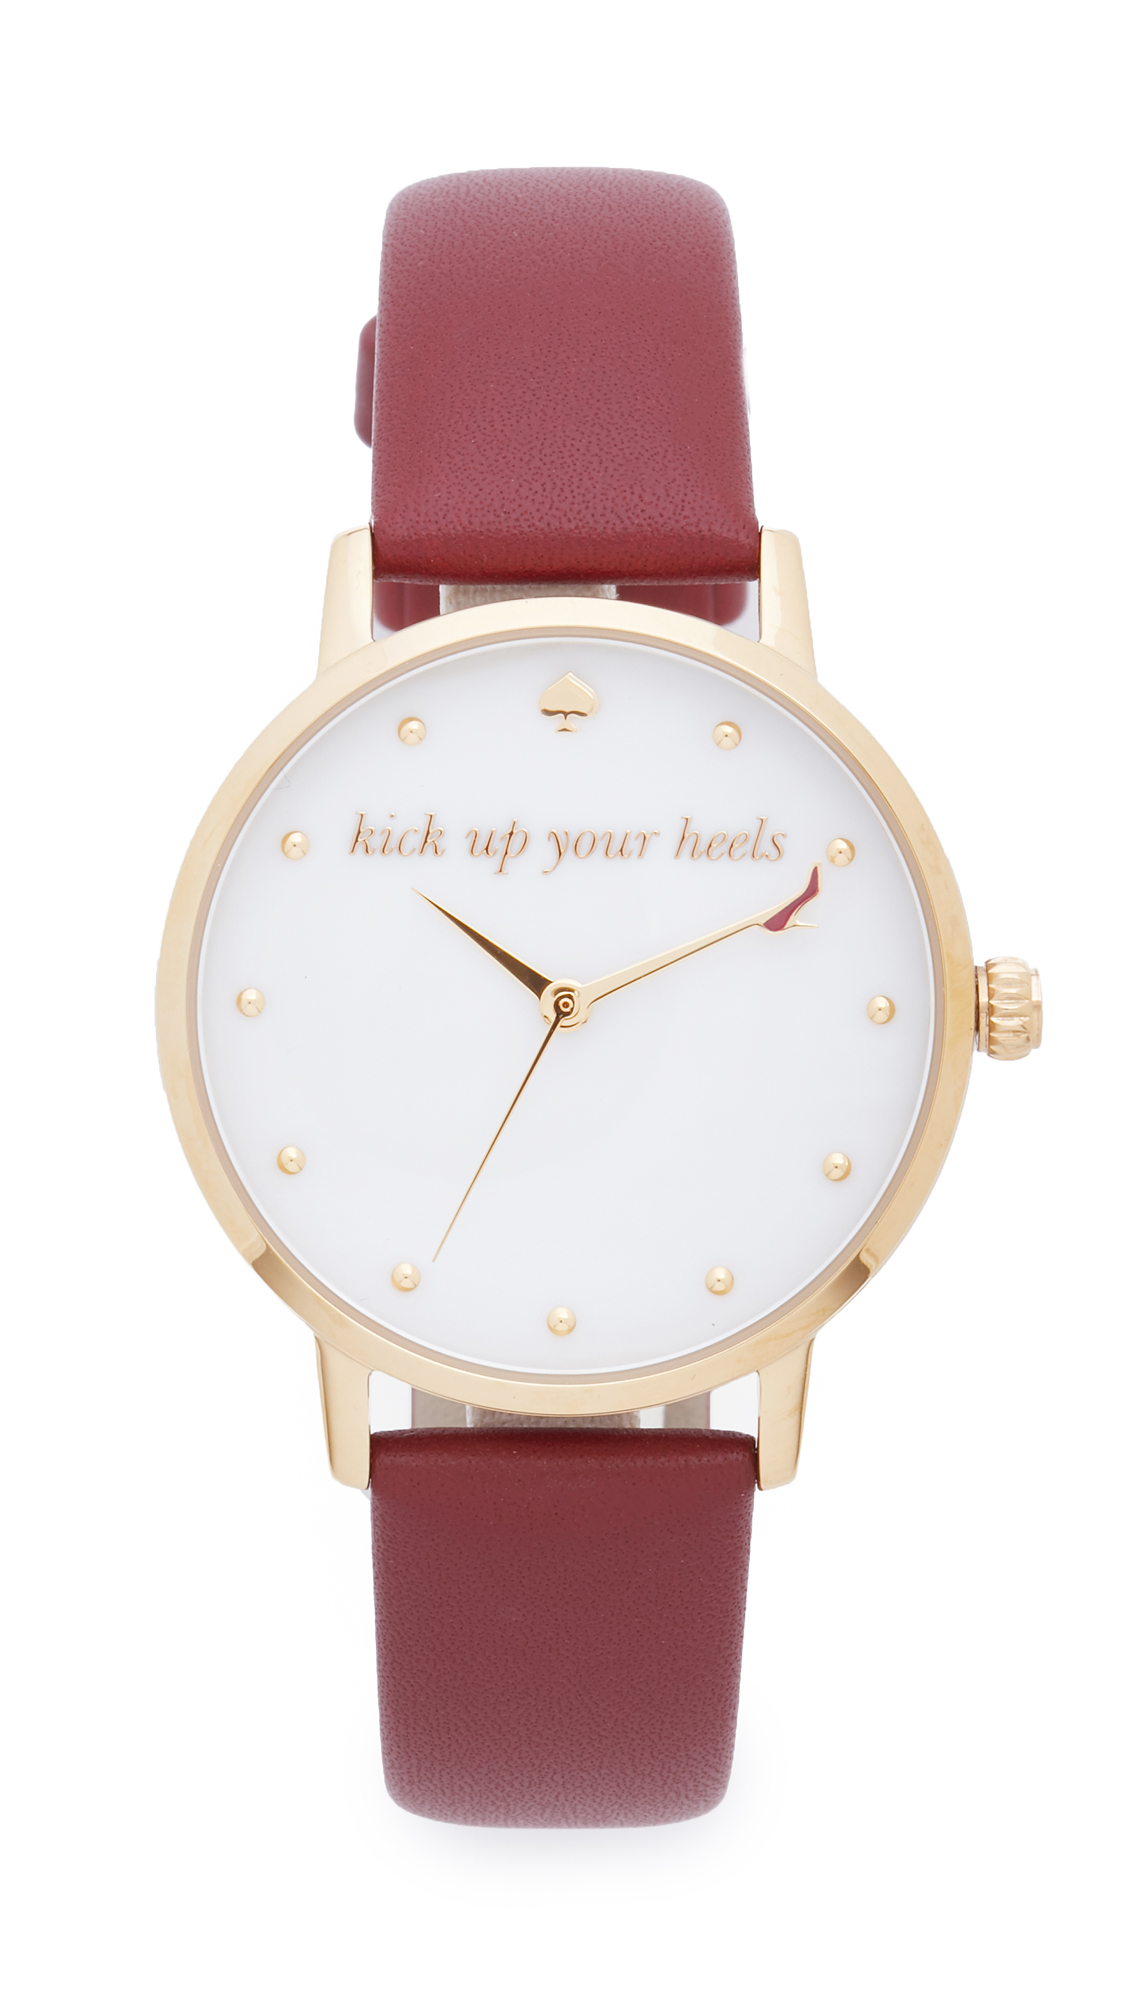 Kate Spade New York Metro Kick Up Your Heels Watch - Gold at Shopbop